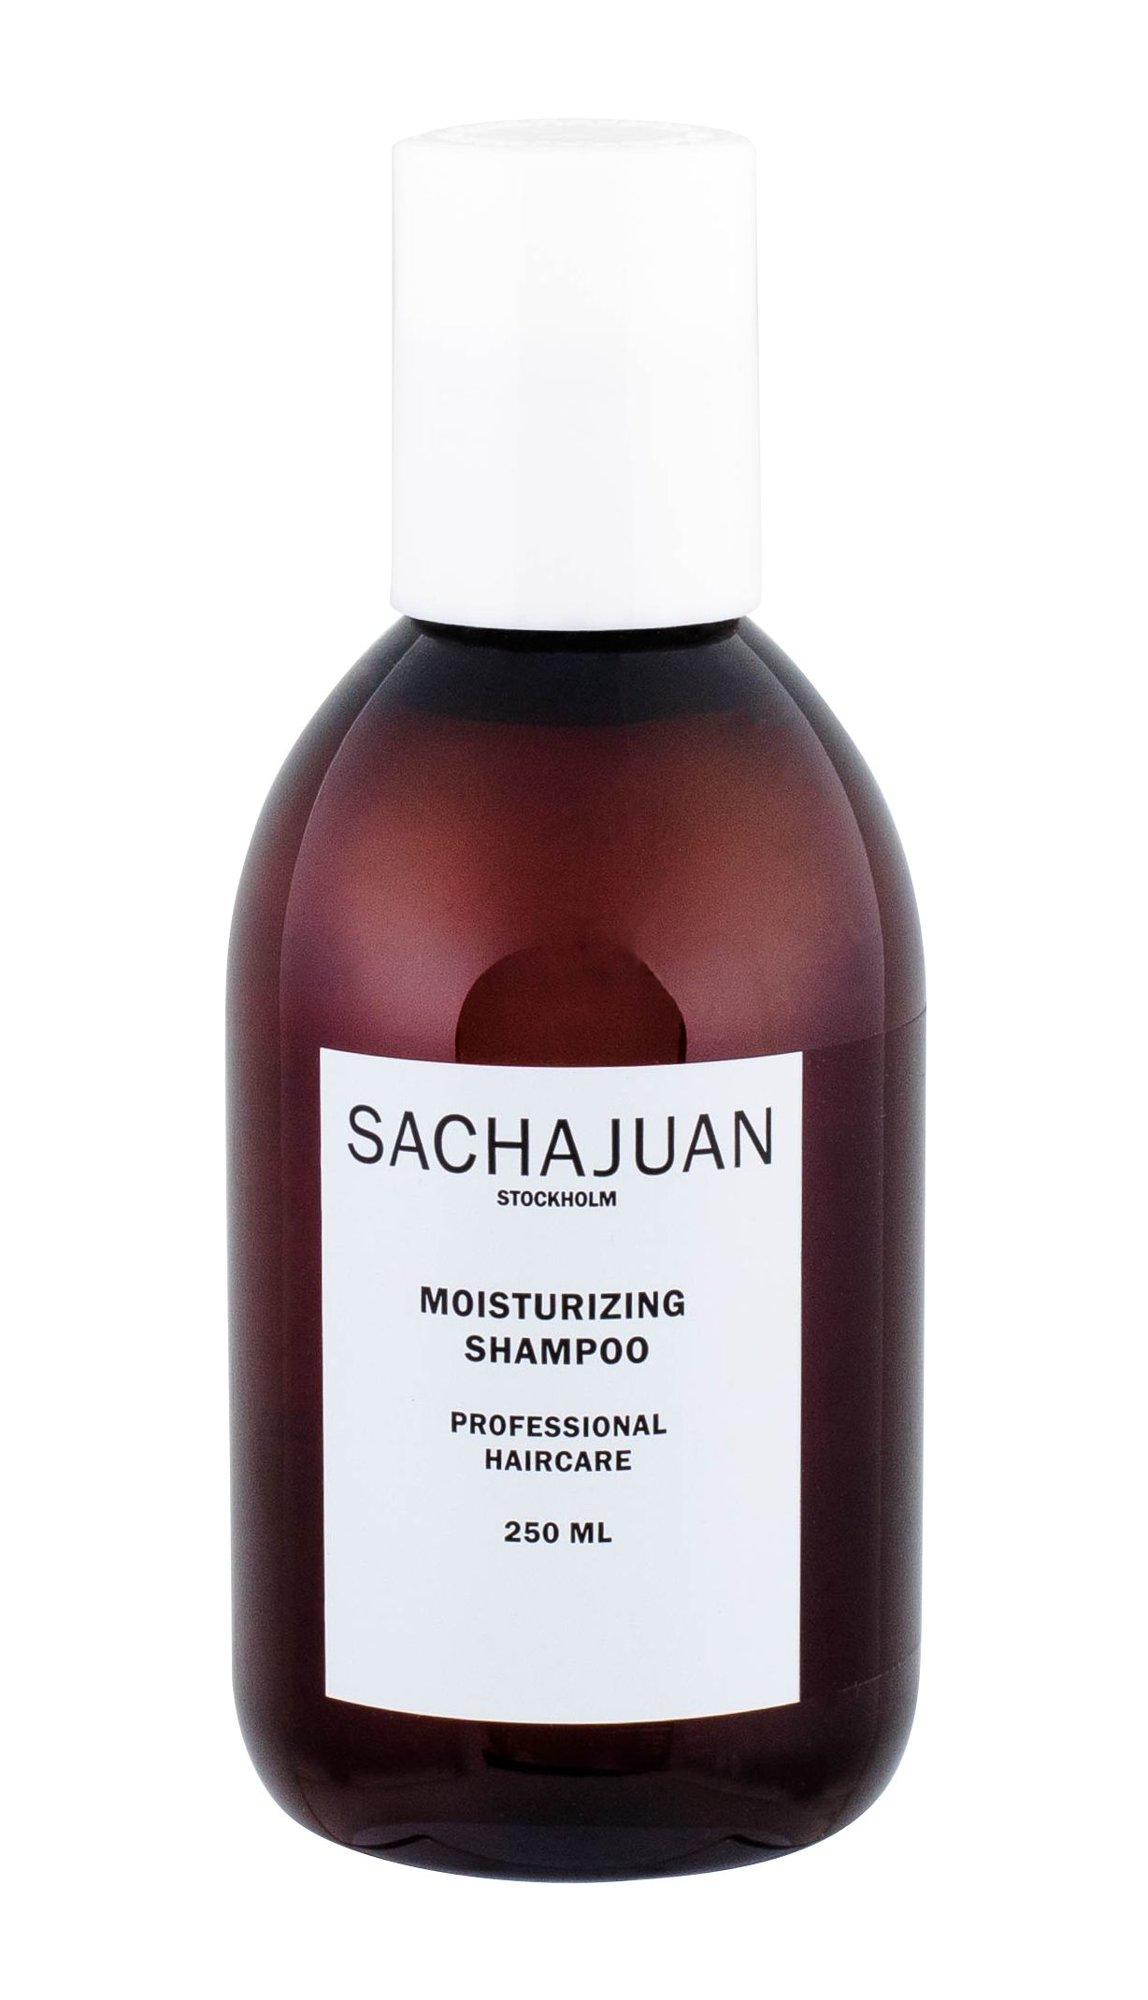 Sachajuan Cleanse & Care Shampoo 250ml  Moisturizing